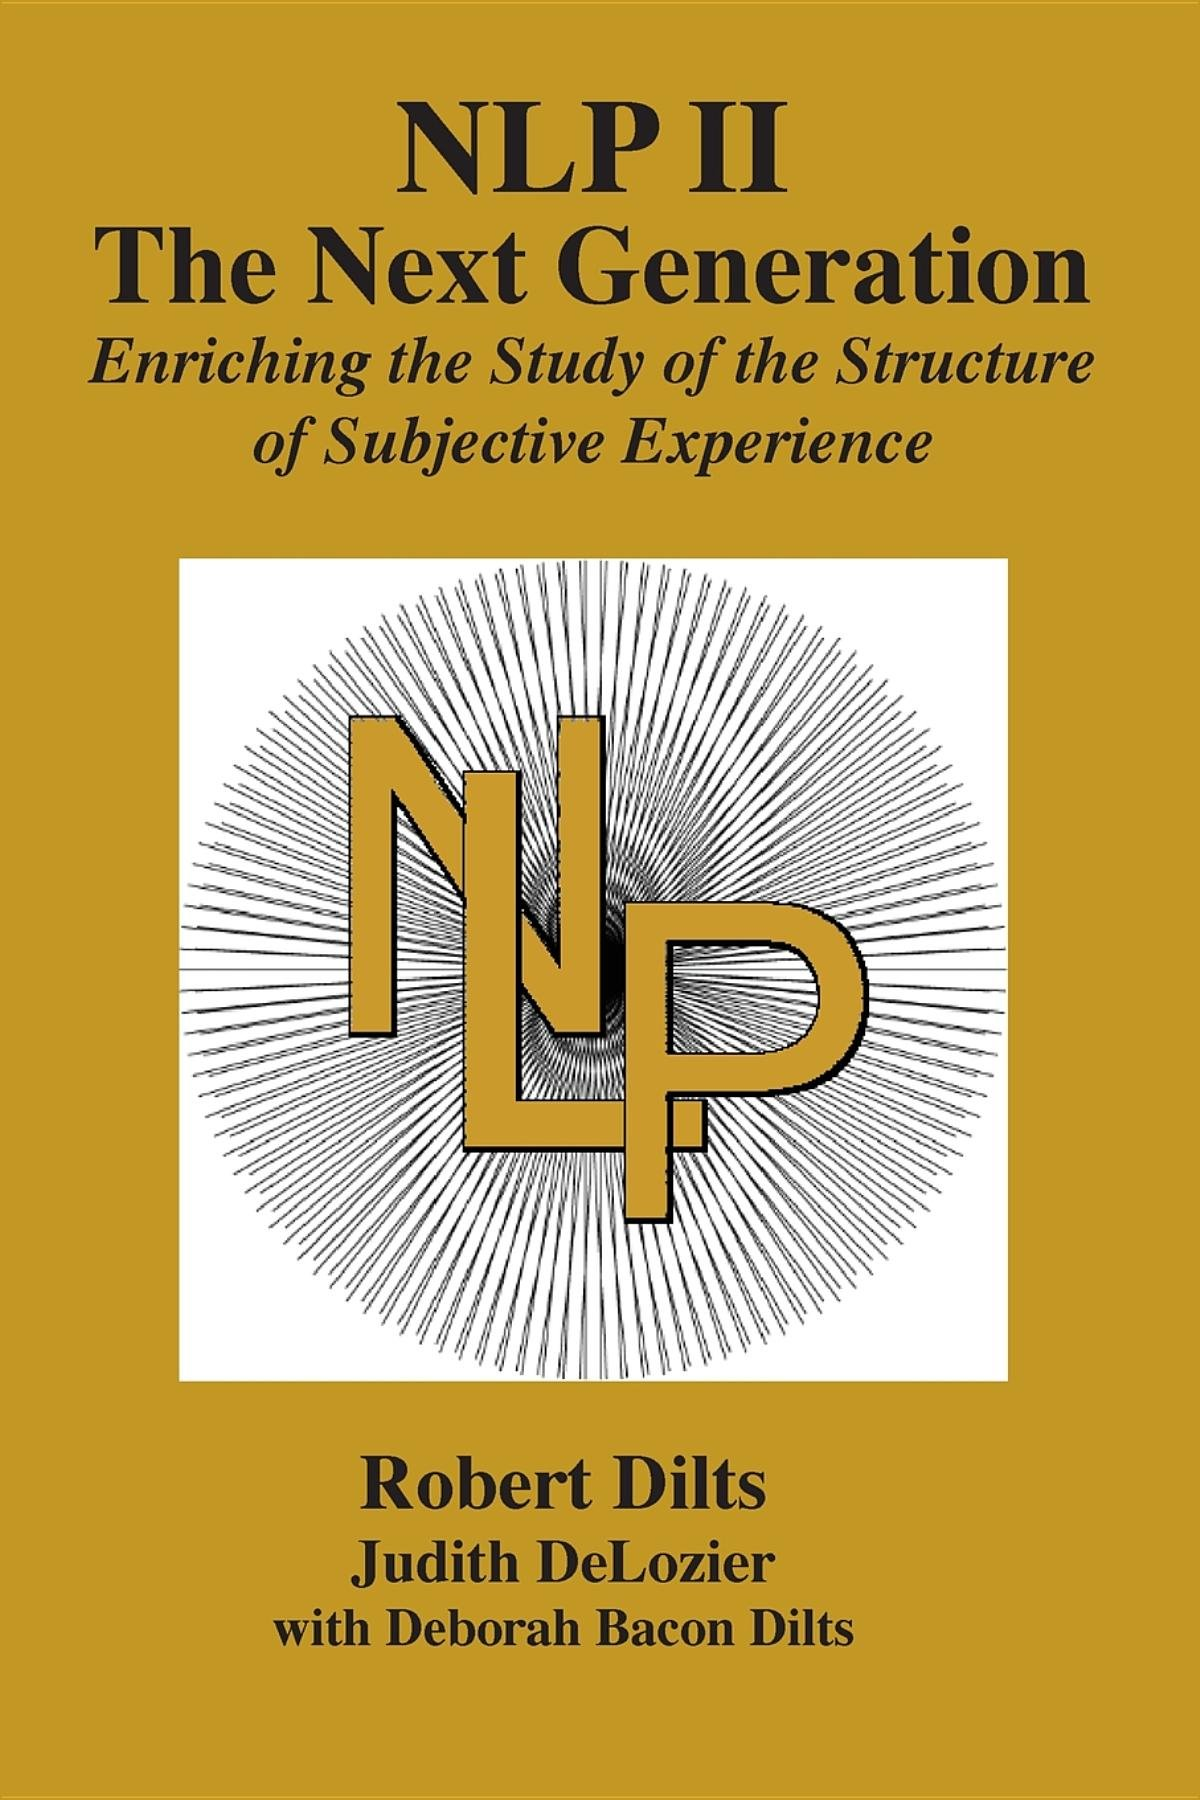 Image OfNLP II: The Next Generation: Enriching The Study Of The Structure Of Subjective Experience